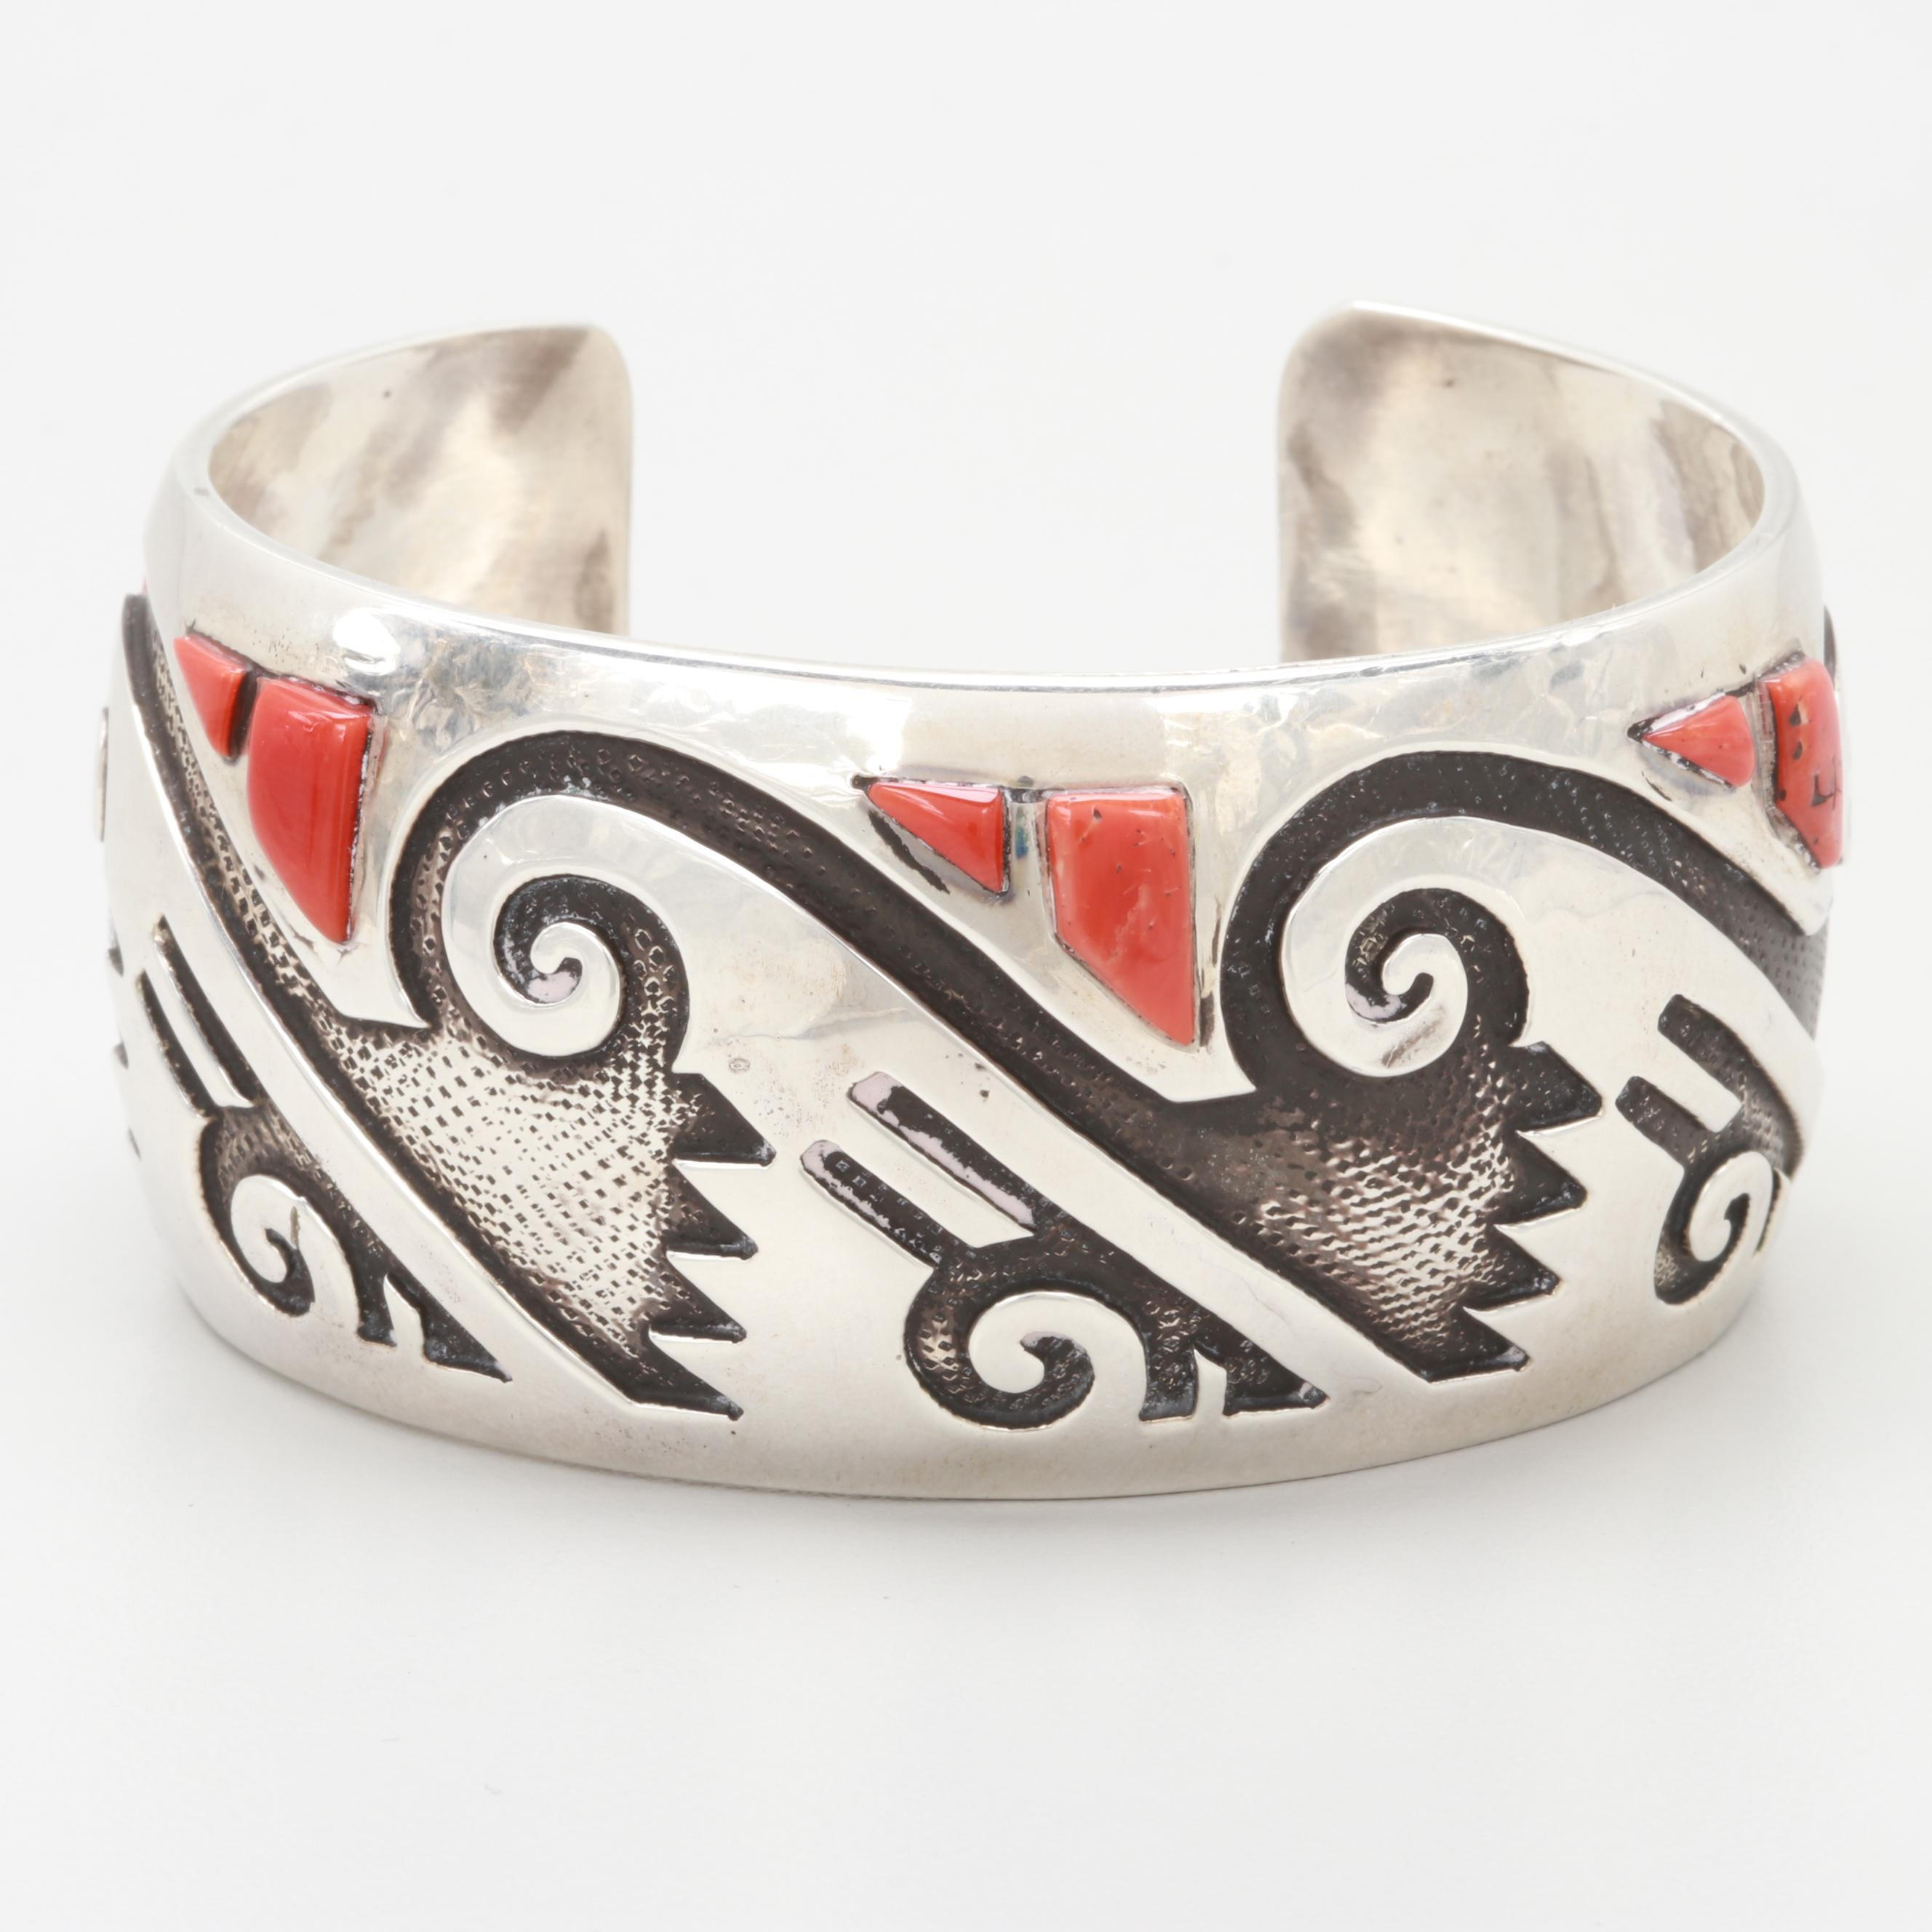 Hyson Craig Navajo Diné Sterling Silver Coral and Overlay Cuff Bracelet